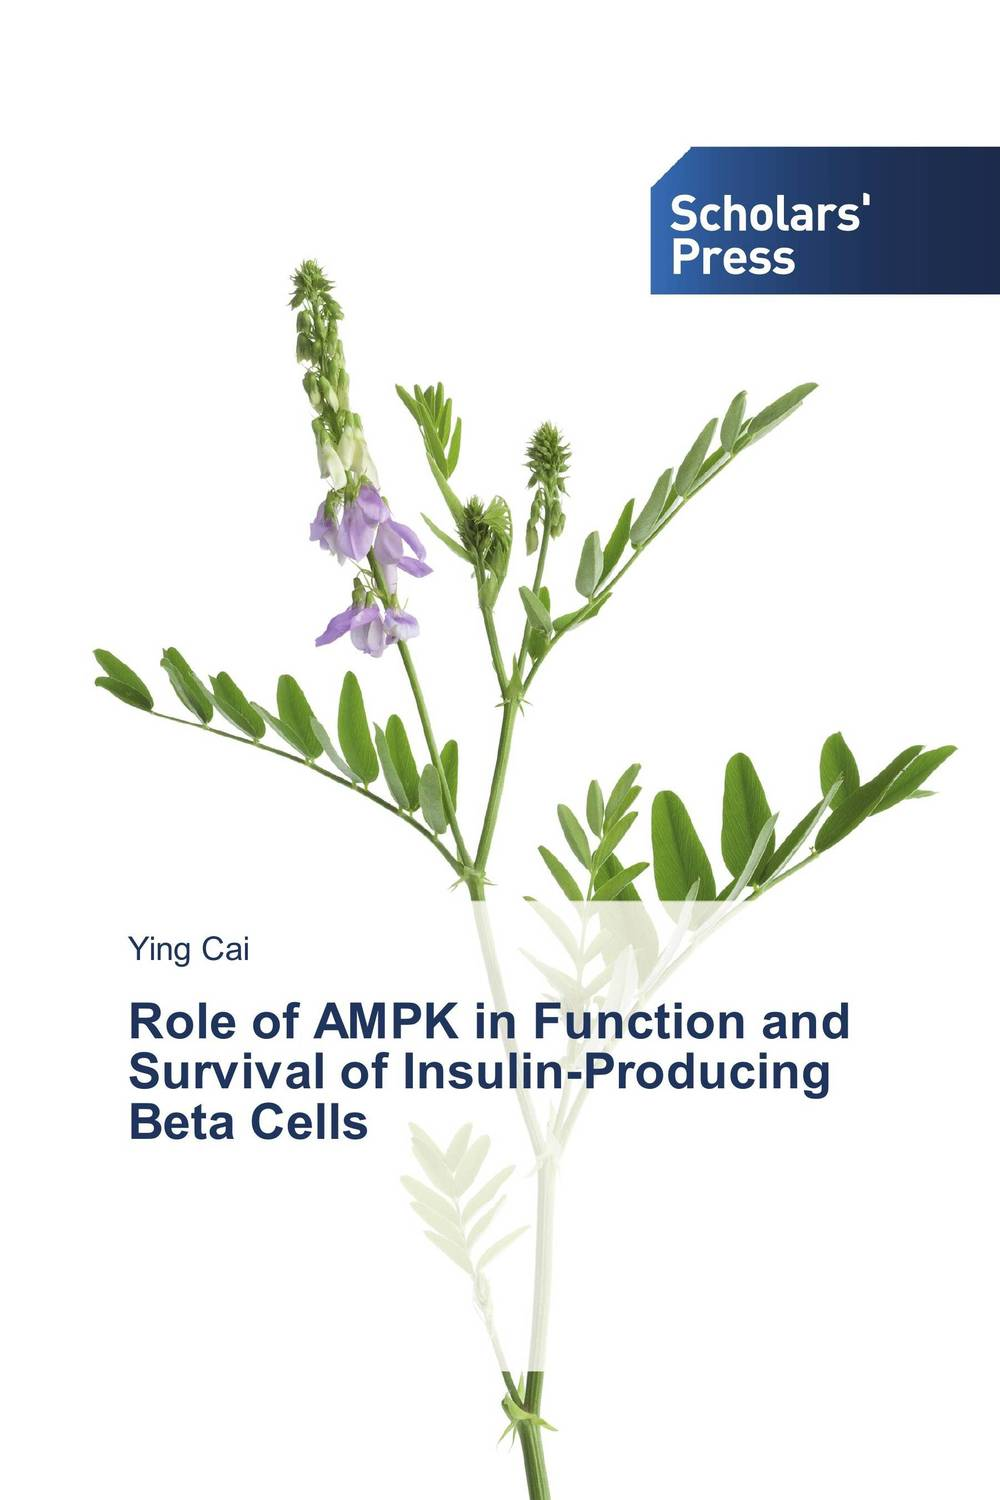 Role of AMPK in Function and Survival of Insulin-Producing Beta Cells methionine supplementation alters beta amyloid levels in brain cells